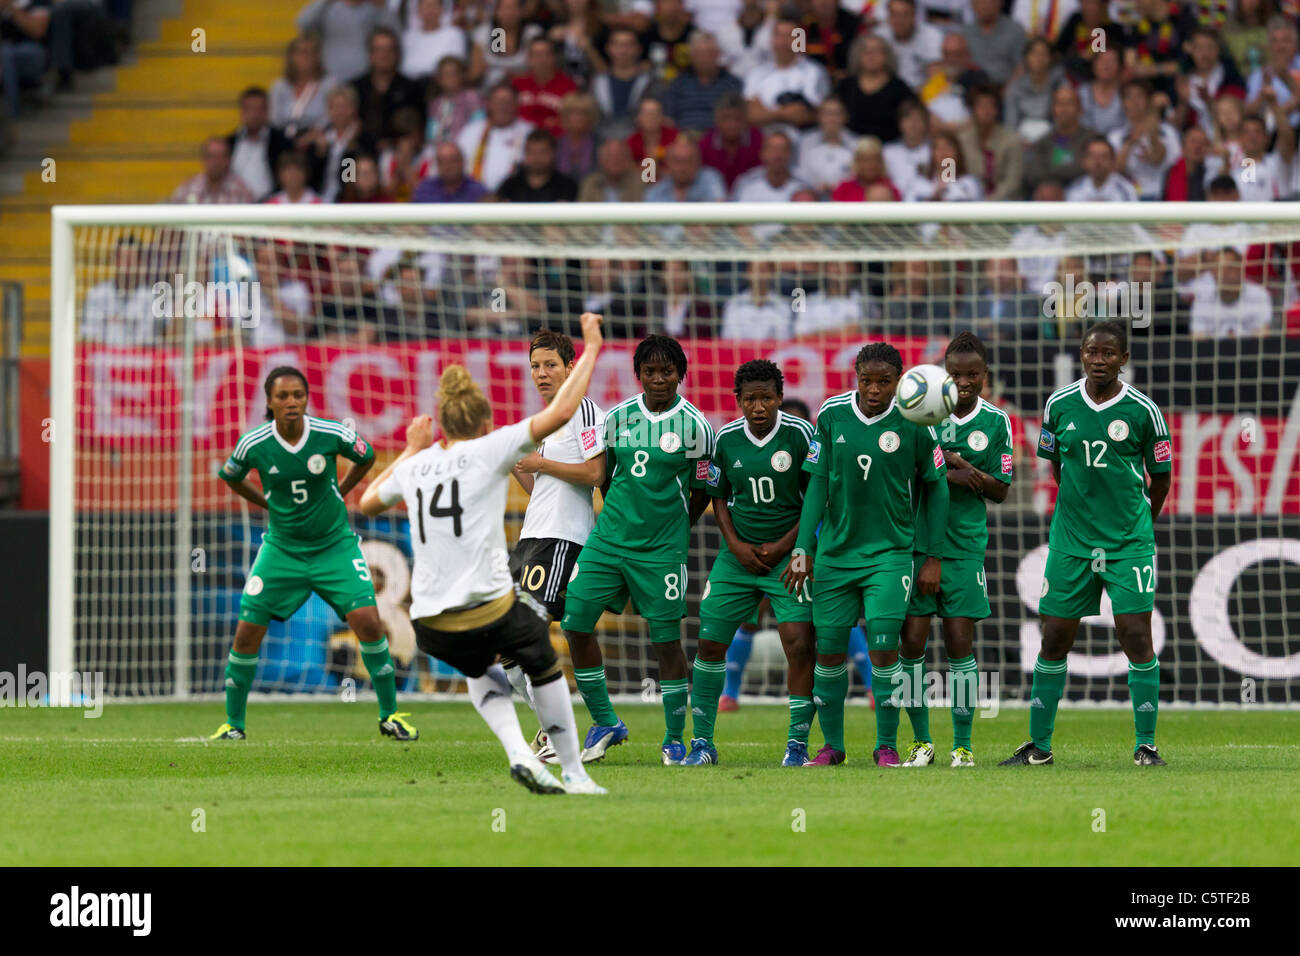 Kim Kulig of Germany (14) takes a free kick against a Nigerian defensive wall during a 2011 FIFA Women's World - Stock Image